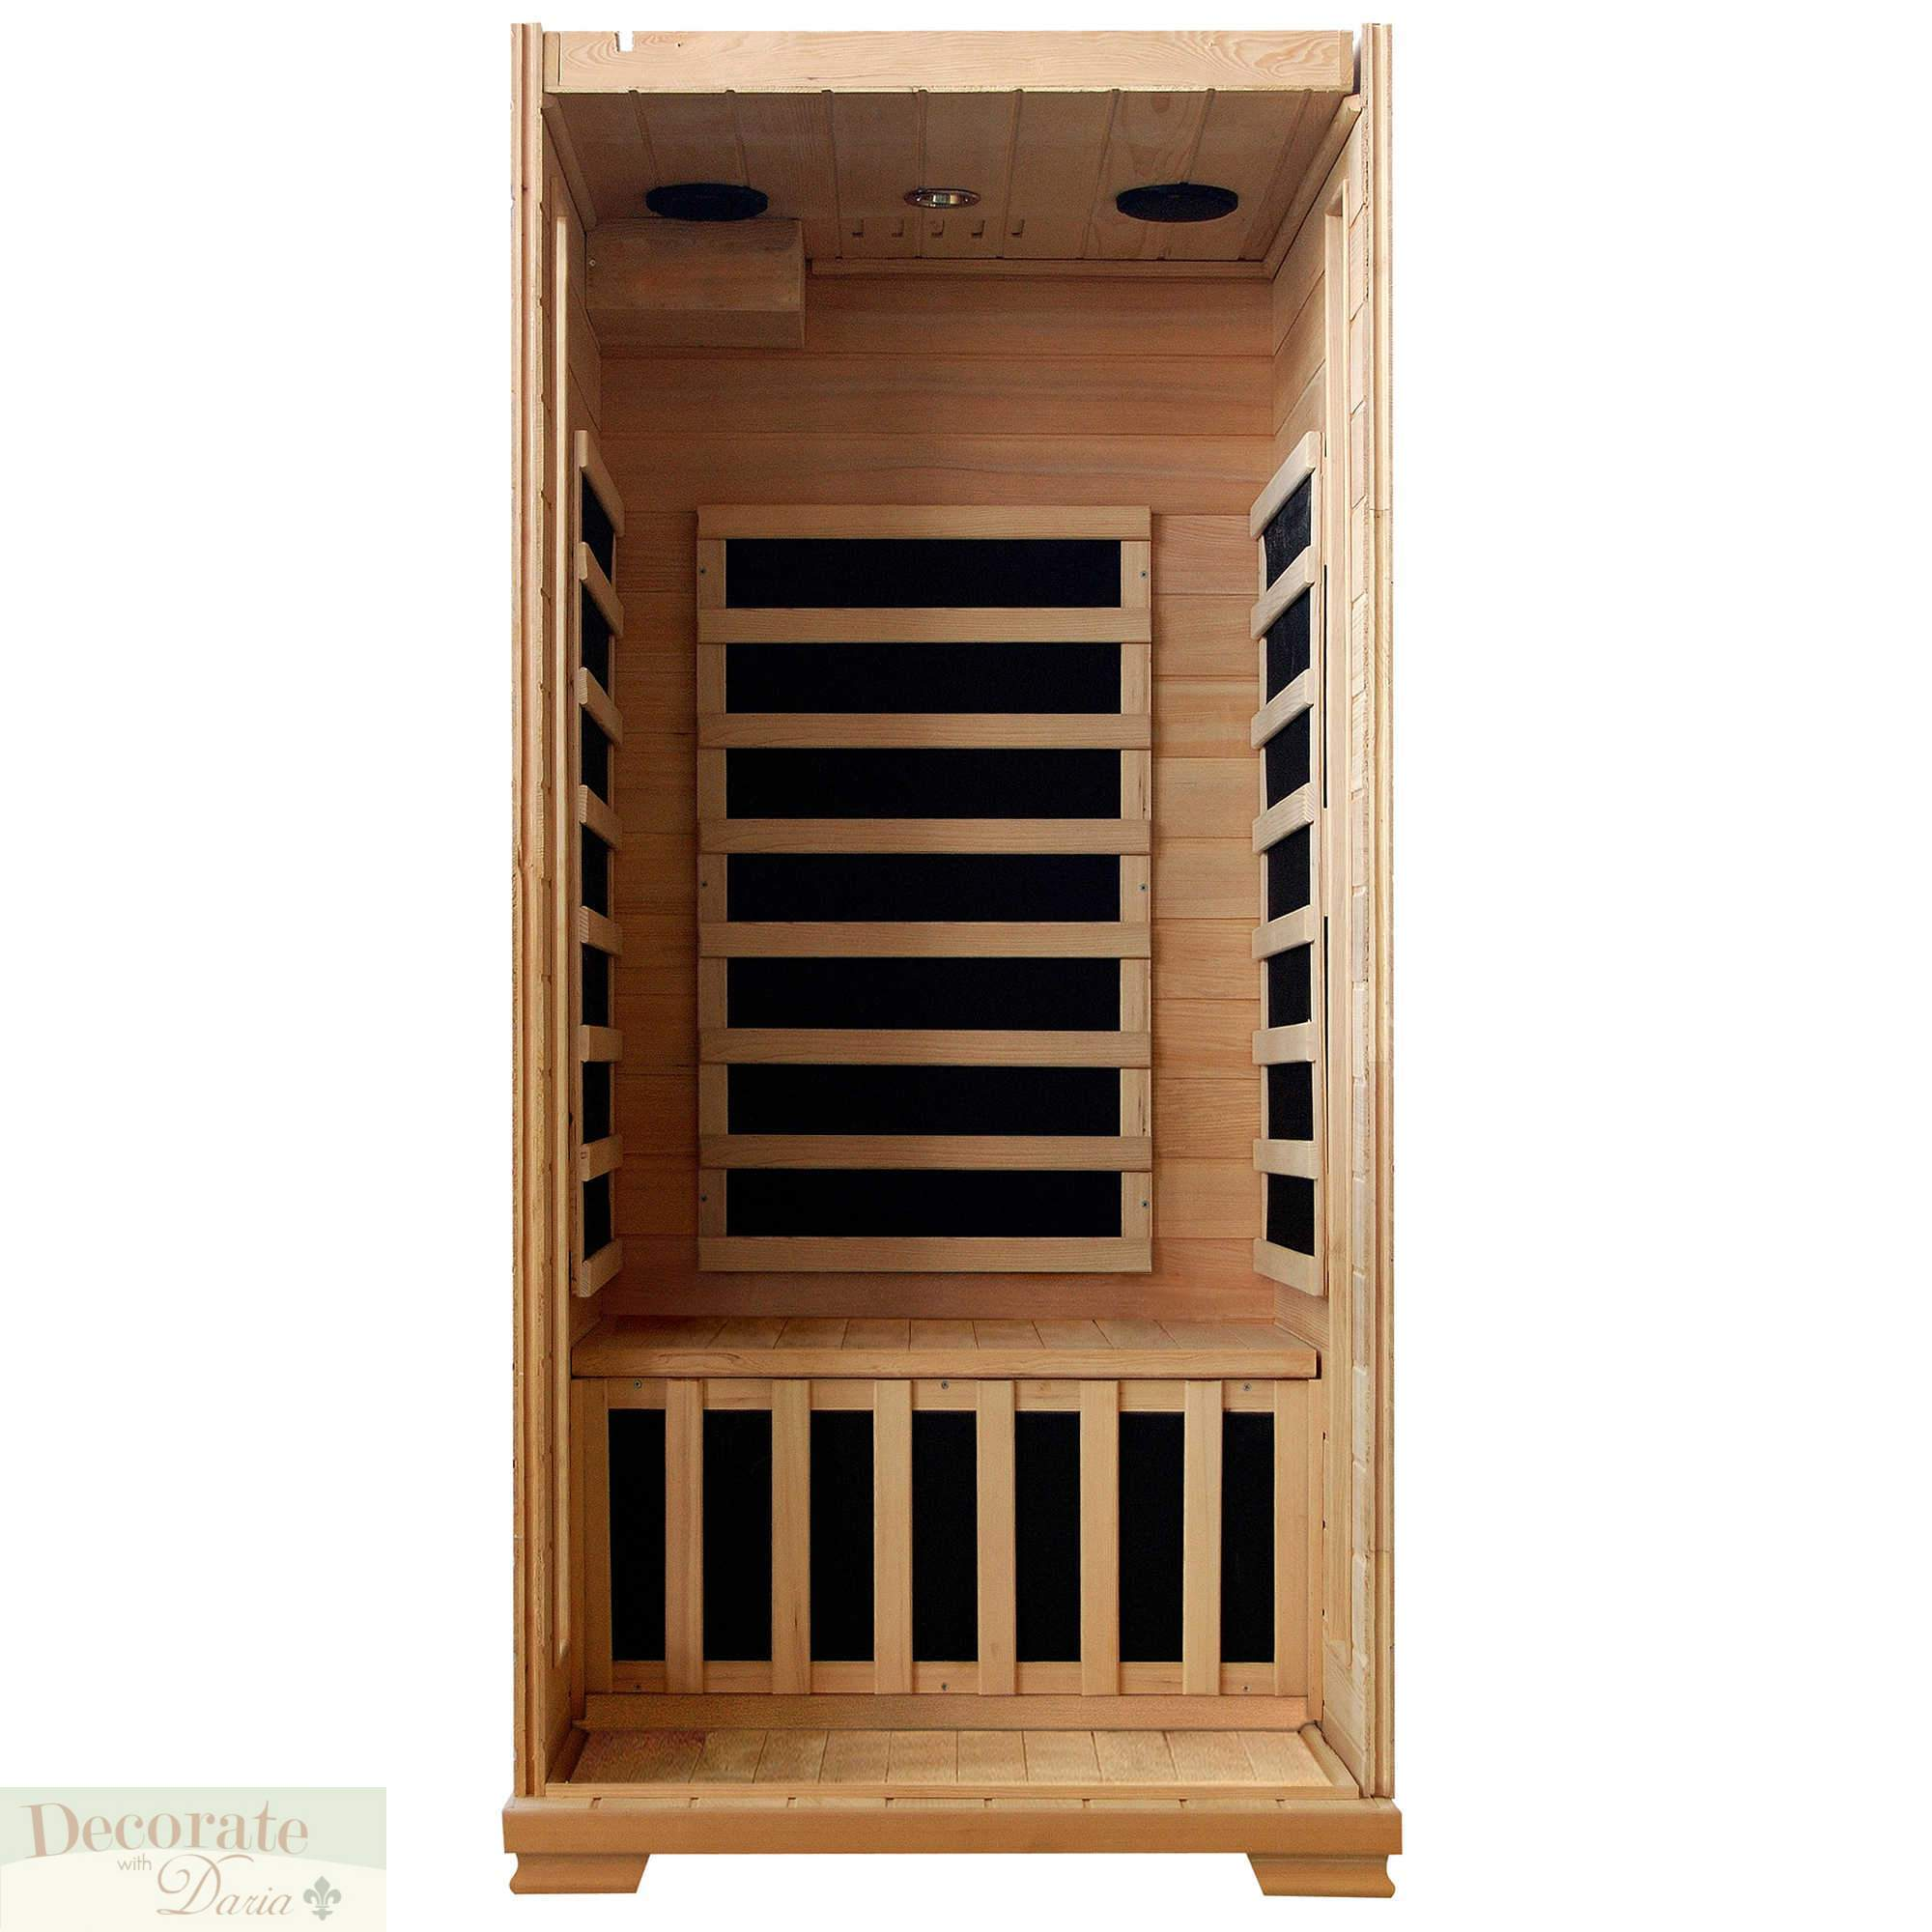 1 person sauna fir far infrared hemlock 4 carbon heaters 120v 15amp mp3 aux new decorate with daria. Black Bedroom Furniture Sets. Home Design Ideas